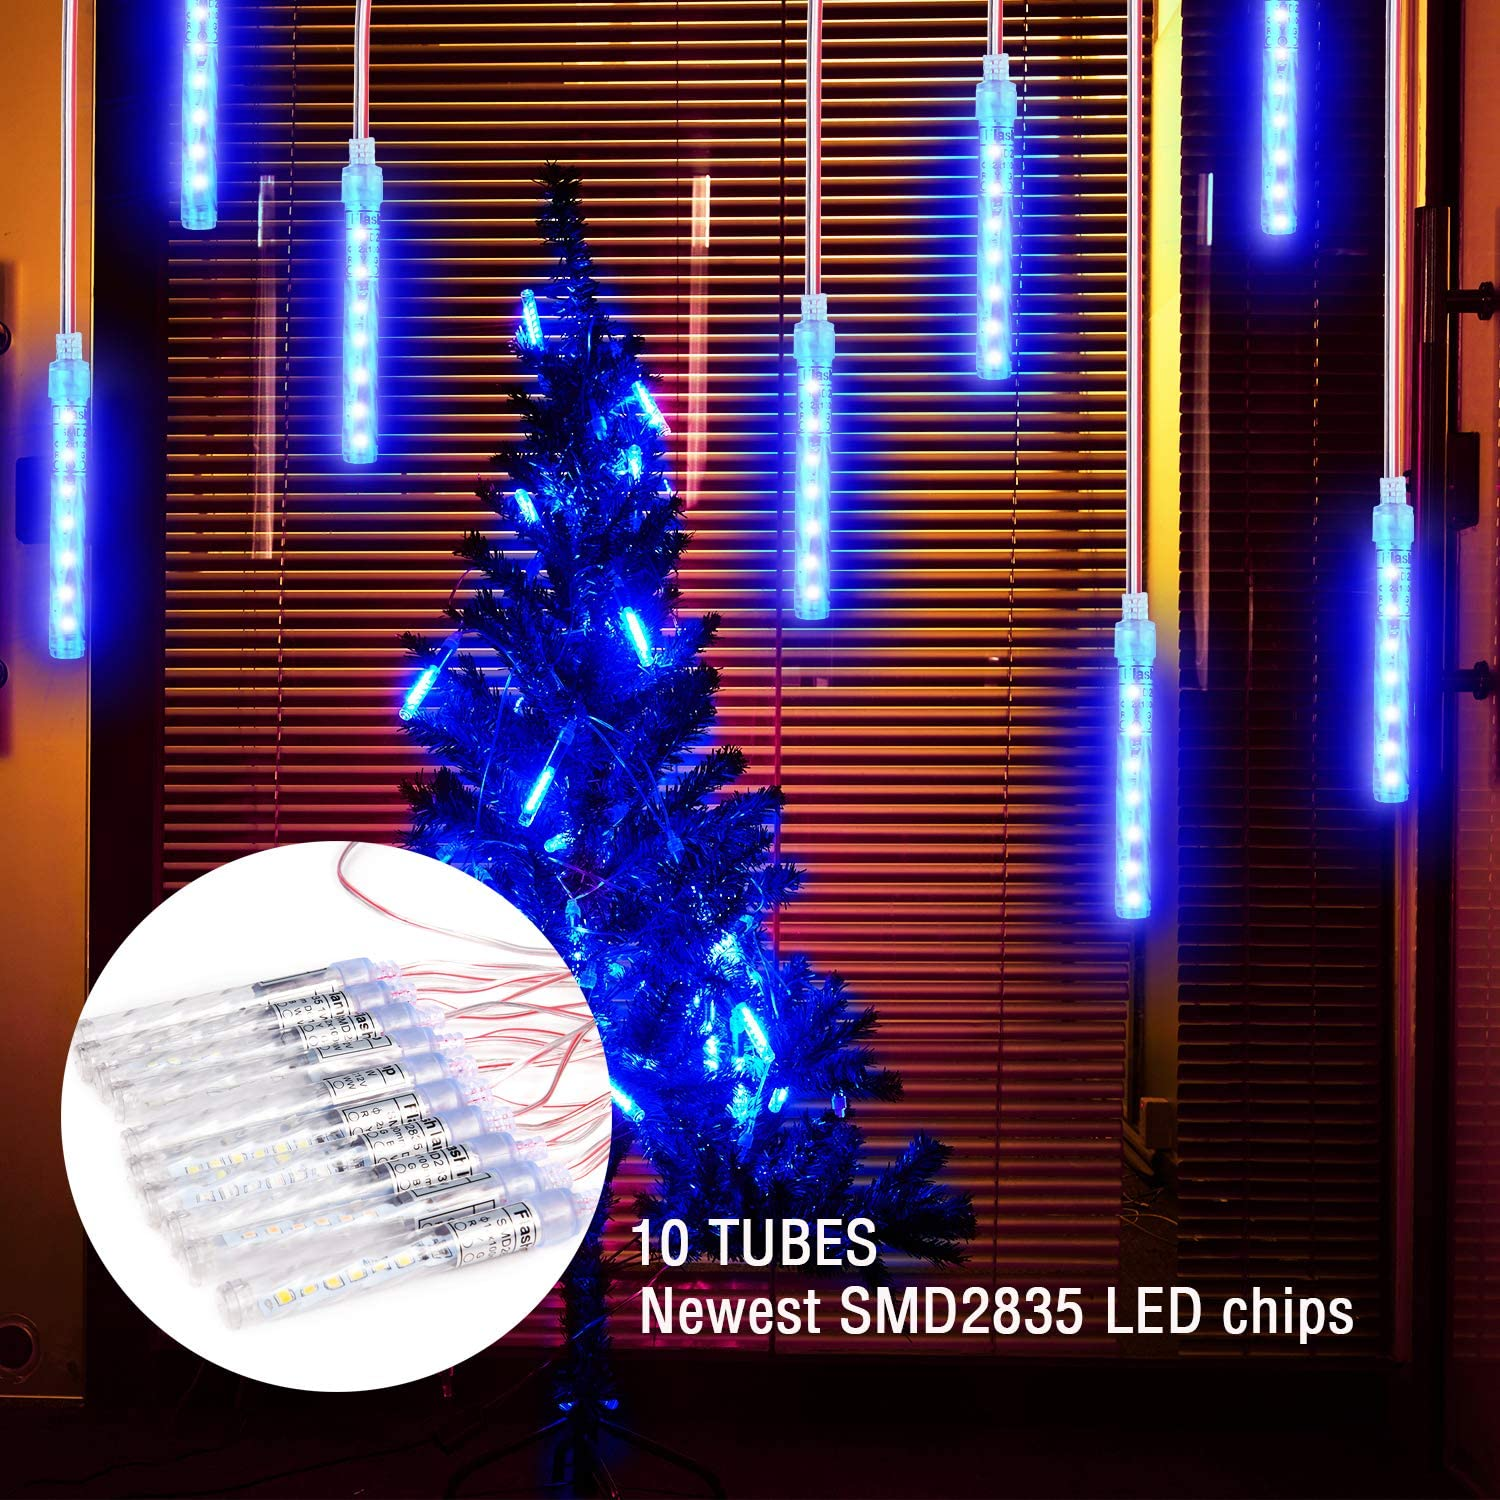 Xmas LED Icicle Snow Lights,120 LEDs & 10 Tubes Upgraded Starry Flash String Lights Waterproof Tubes and Plug for Holiday Party Home Garden Tree Decor,12V Powered Support 5 Sets Hook Together (Blue)